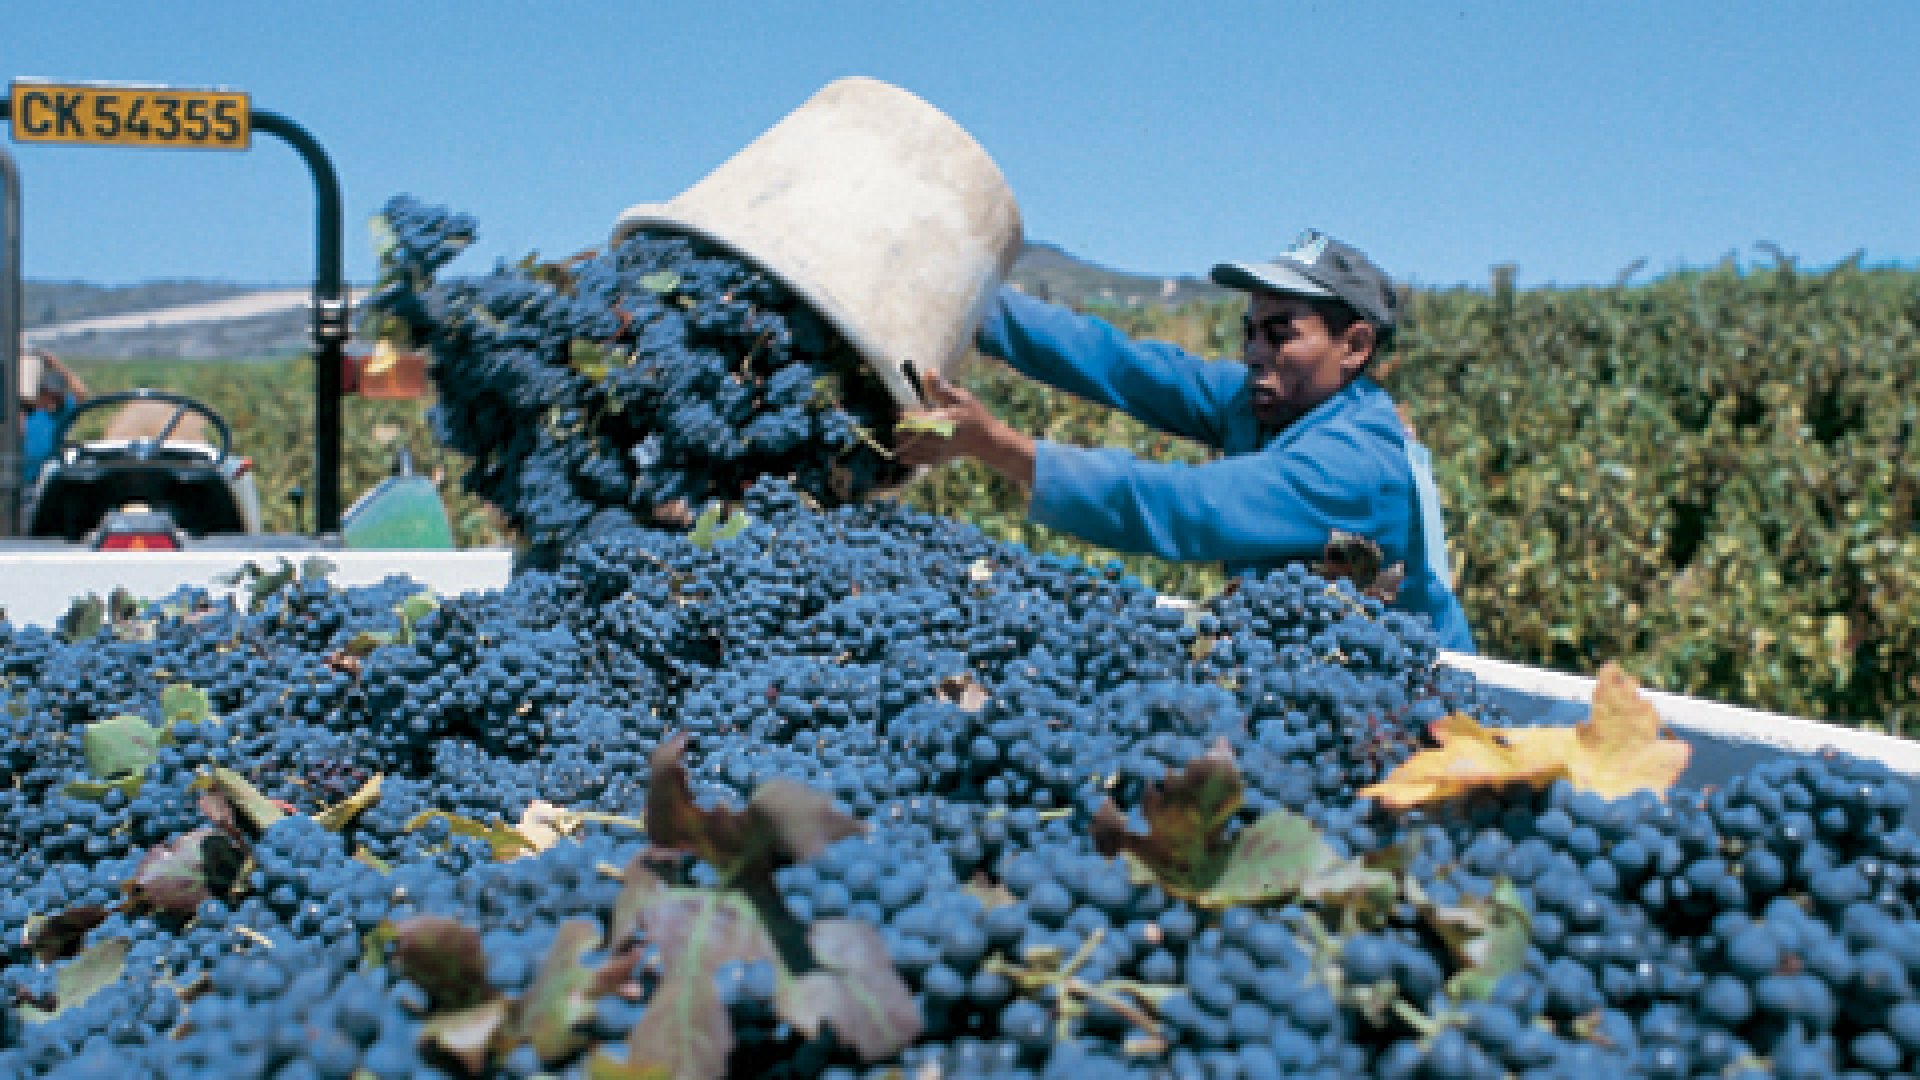 <strong>BEHIND THE LABEL</strong> In a country where less than 2 percent of wine-growing land is black-owned, many black wineries are virtual: The grapes are grown and the wine is made to order by large growers. Here, workers at Swartland Winery harvest grapes for wines that will carry the Seven Sisters label.